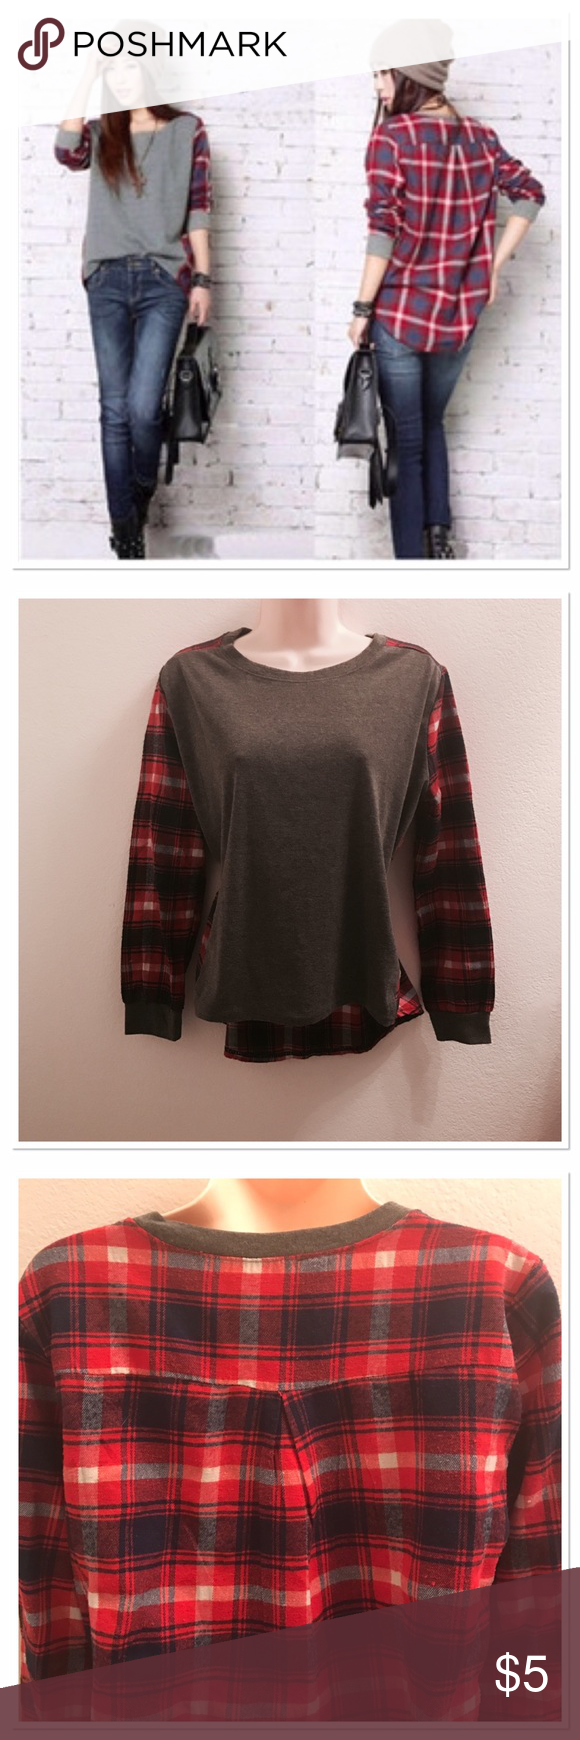 Hi low long sleeve plaid top Really comfortable. Solid grey with red/blue plaid in the back and sleeves. Length 20 in front, 24 in back, 20 in sleeves. Size says L bit I think it's more S. Bust 17 in flat. Tops